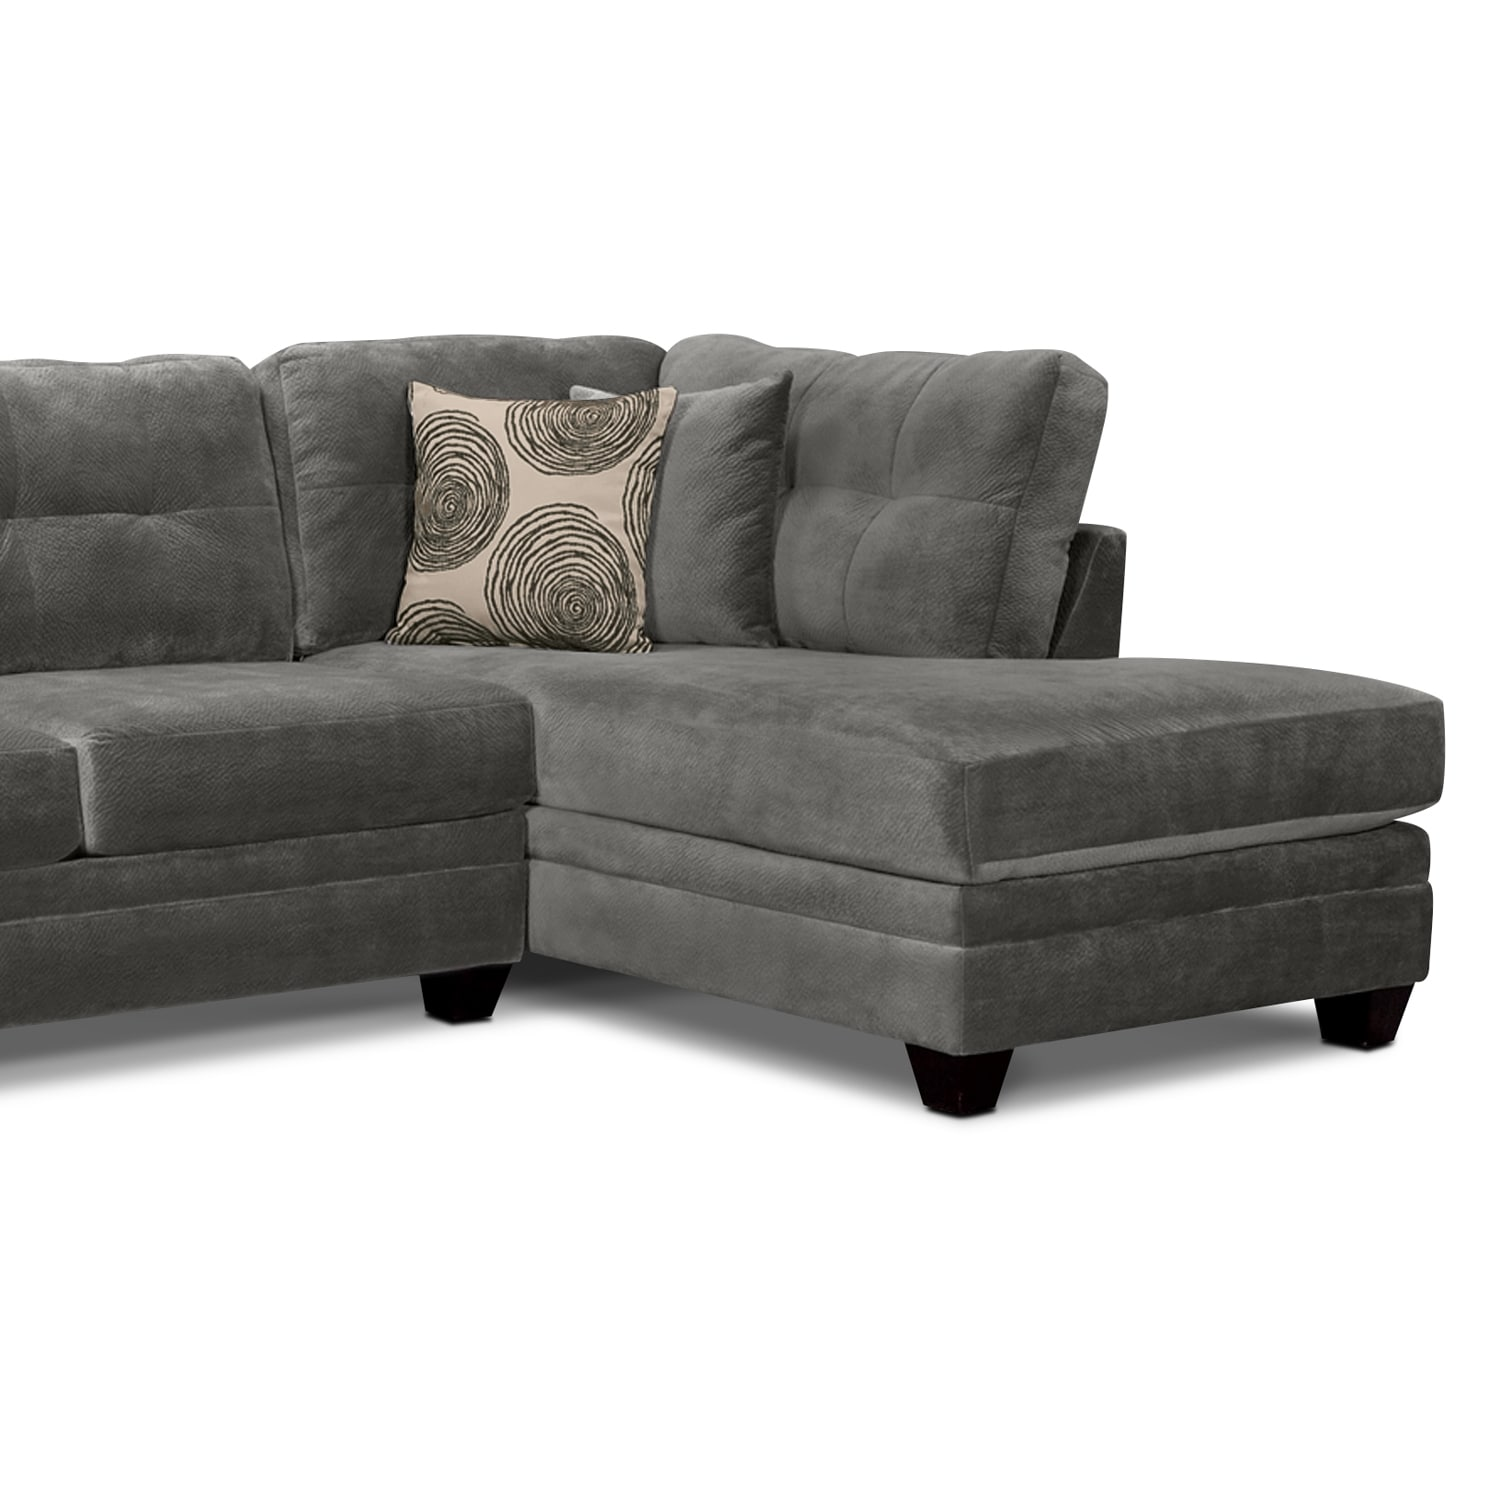 Cordelle 2 Piece Right Facing Chaise Sectional Gray American Signature Furniture